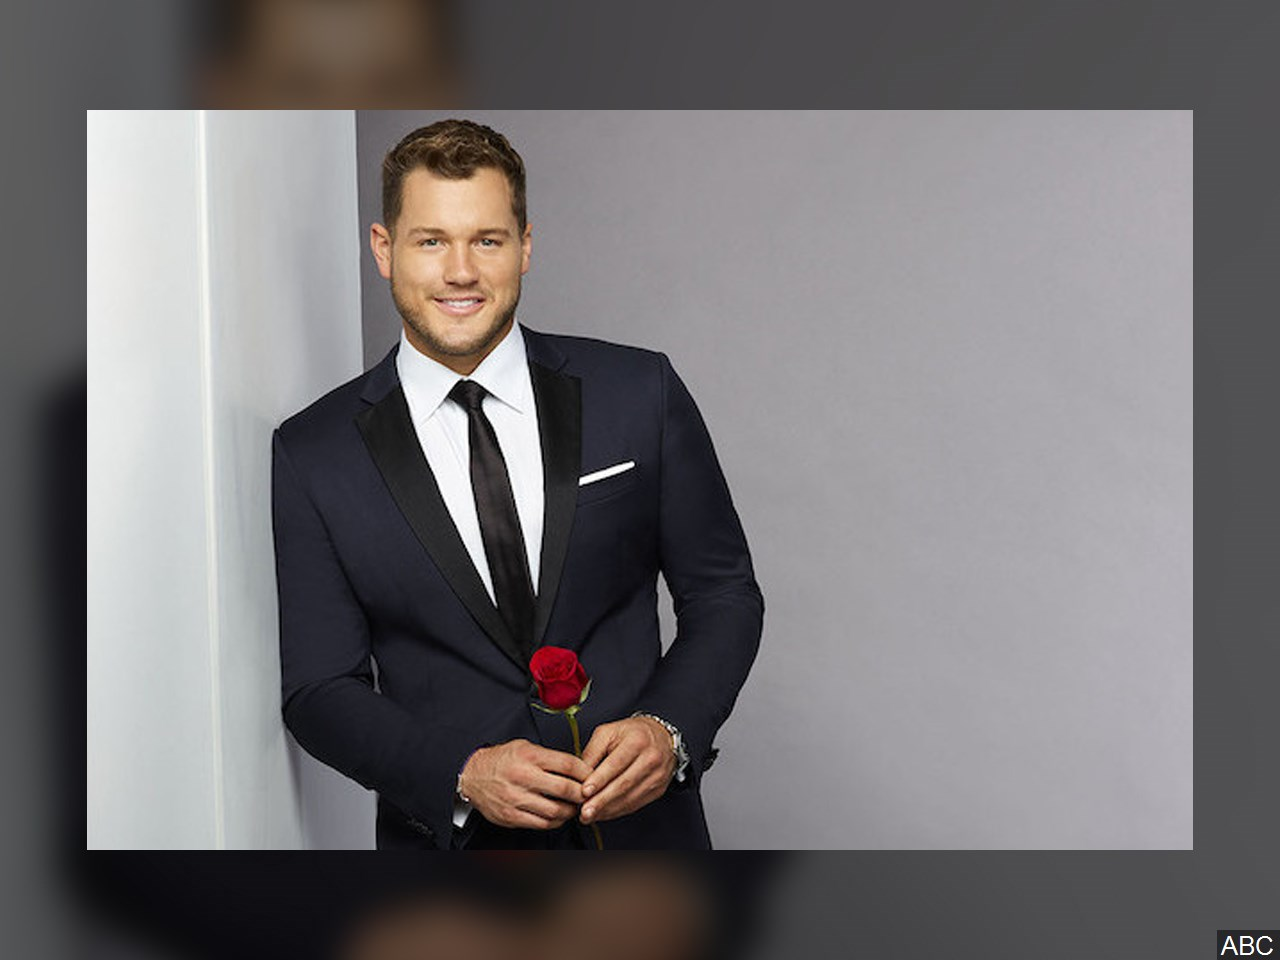 Former 'Bachelor' star Colton Underwood announces he's gay